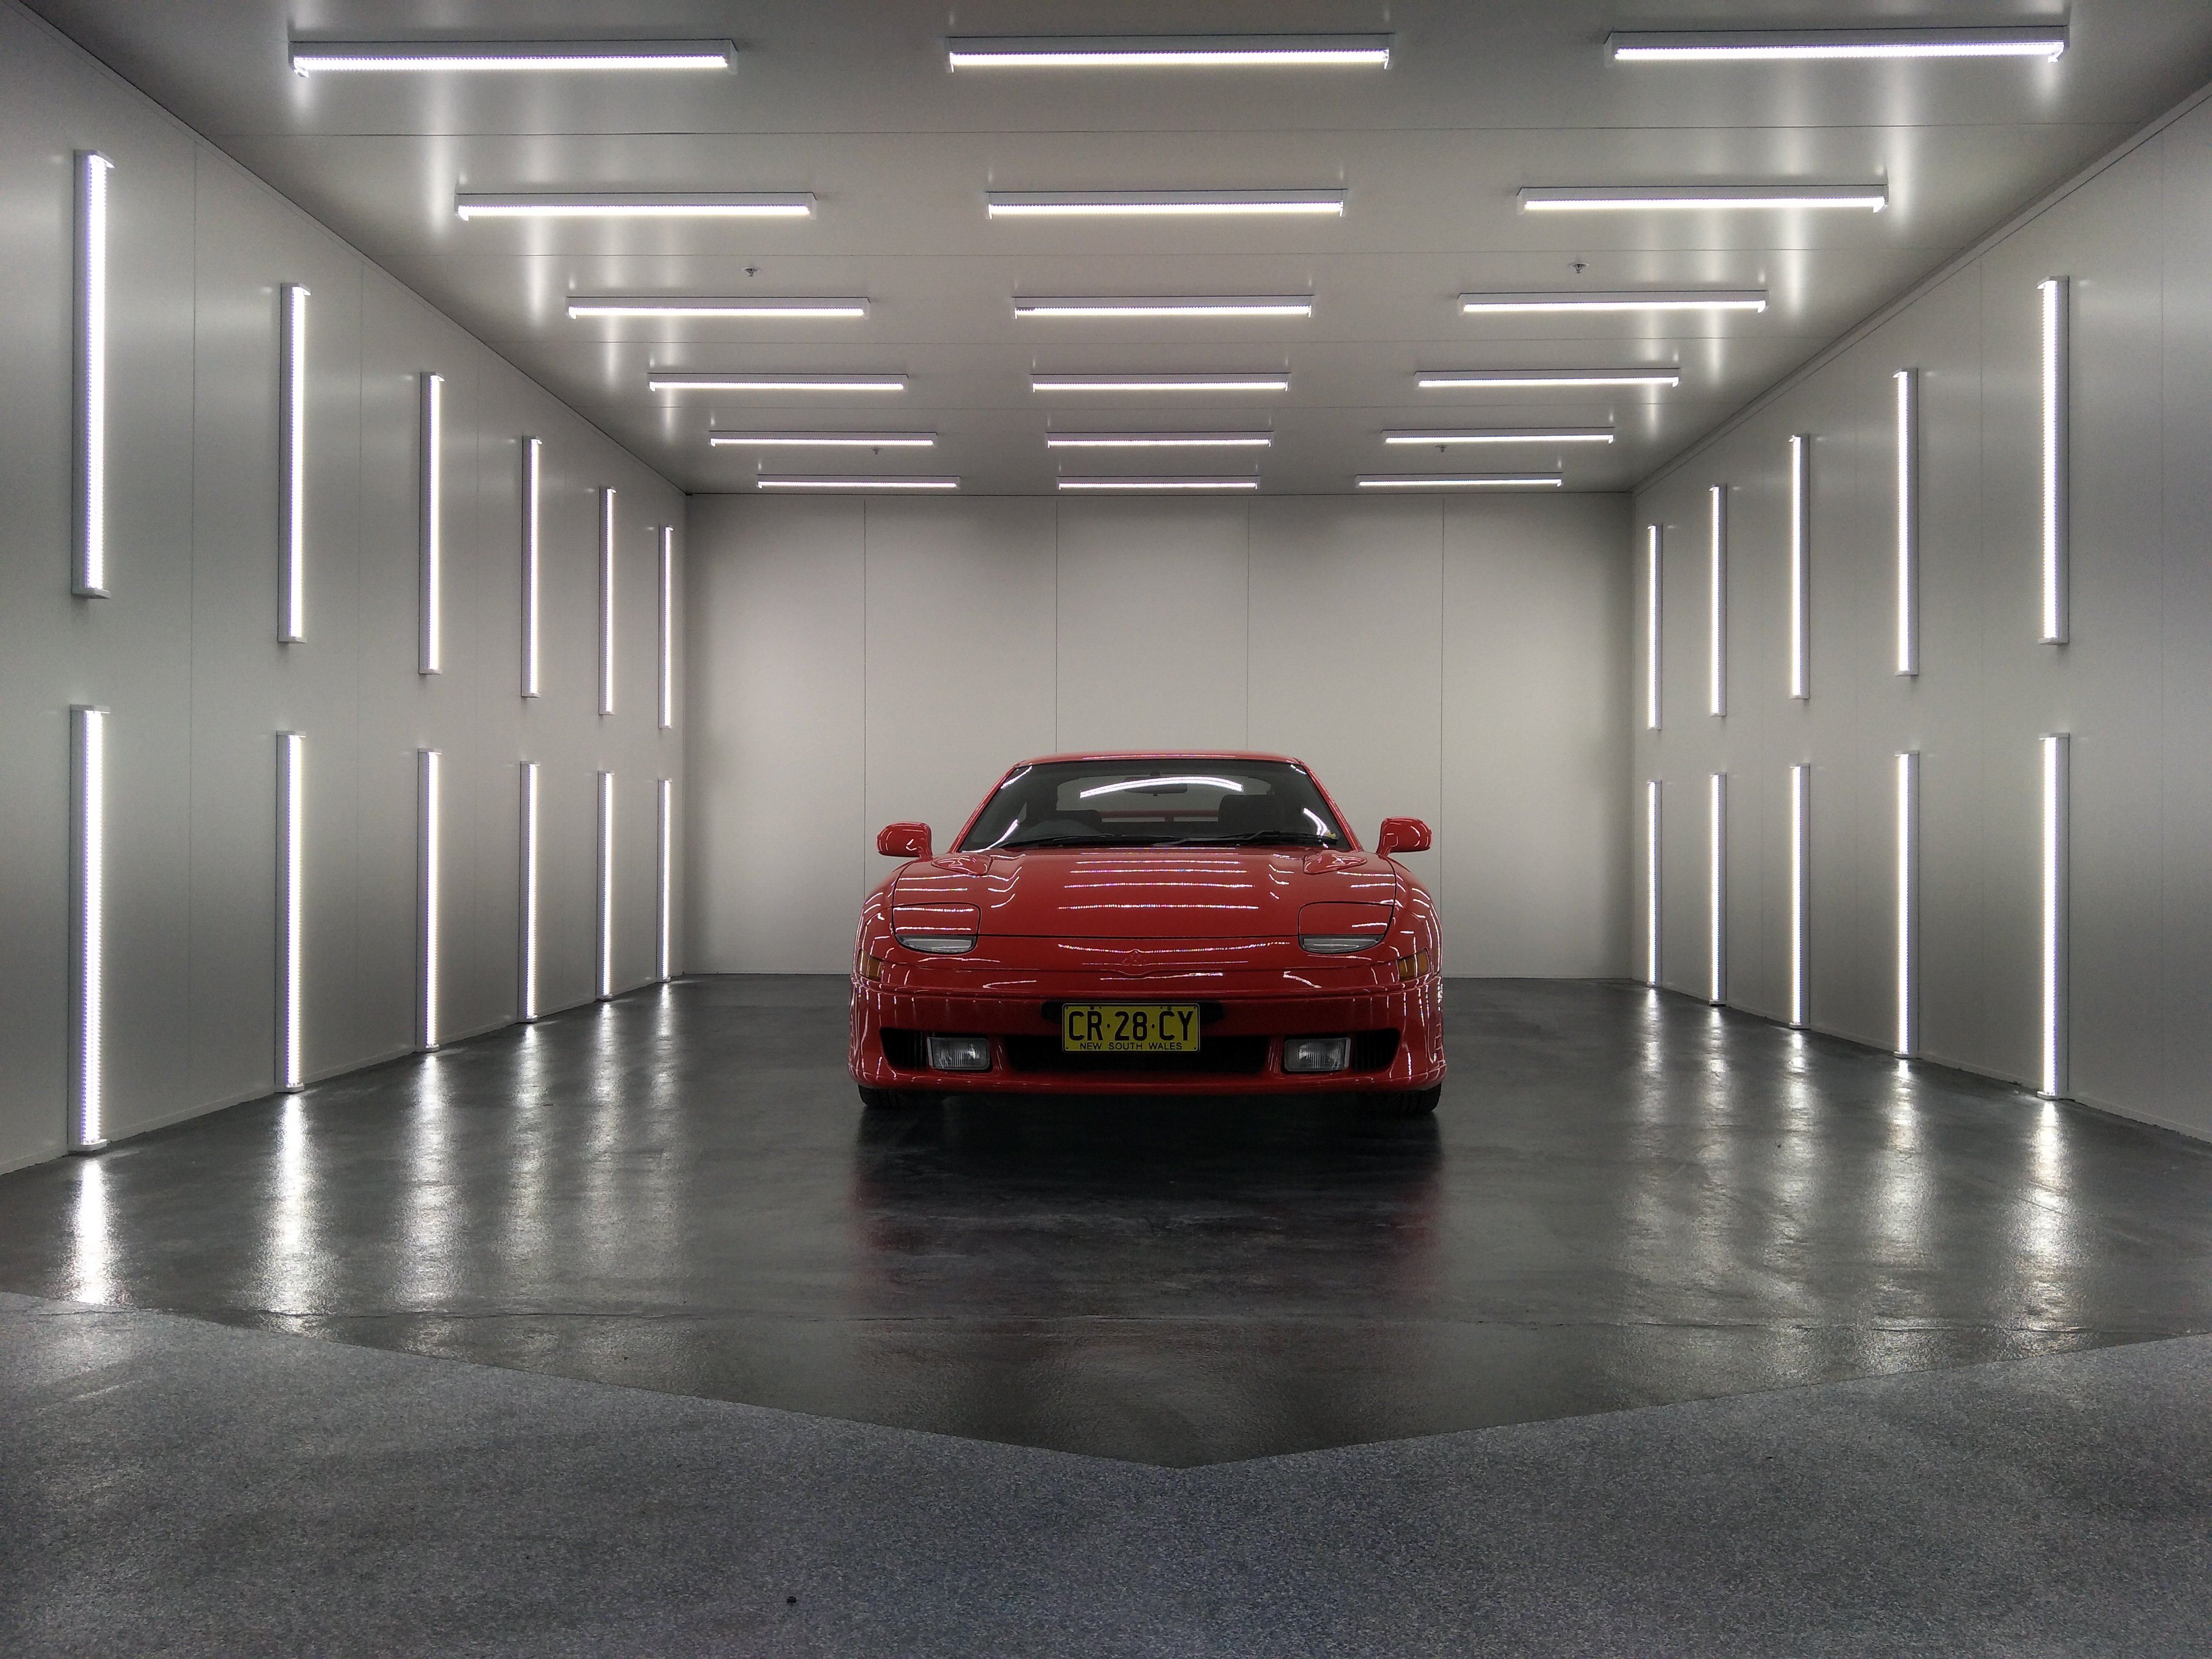 For Sale: 1993 Mitsubishi 3000gt VR4 twin turbo Australian delivered 65 of 117-img20190110162216.jpg